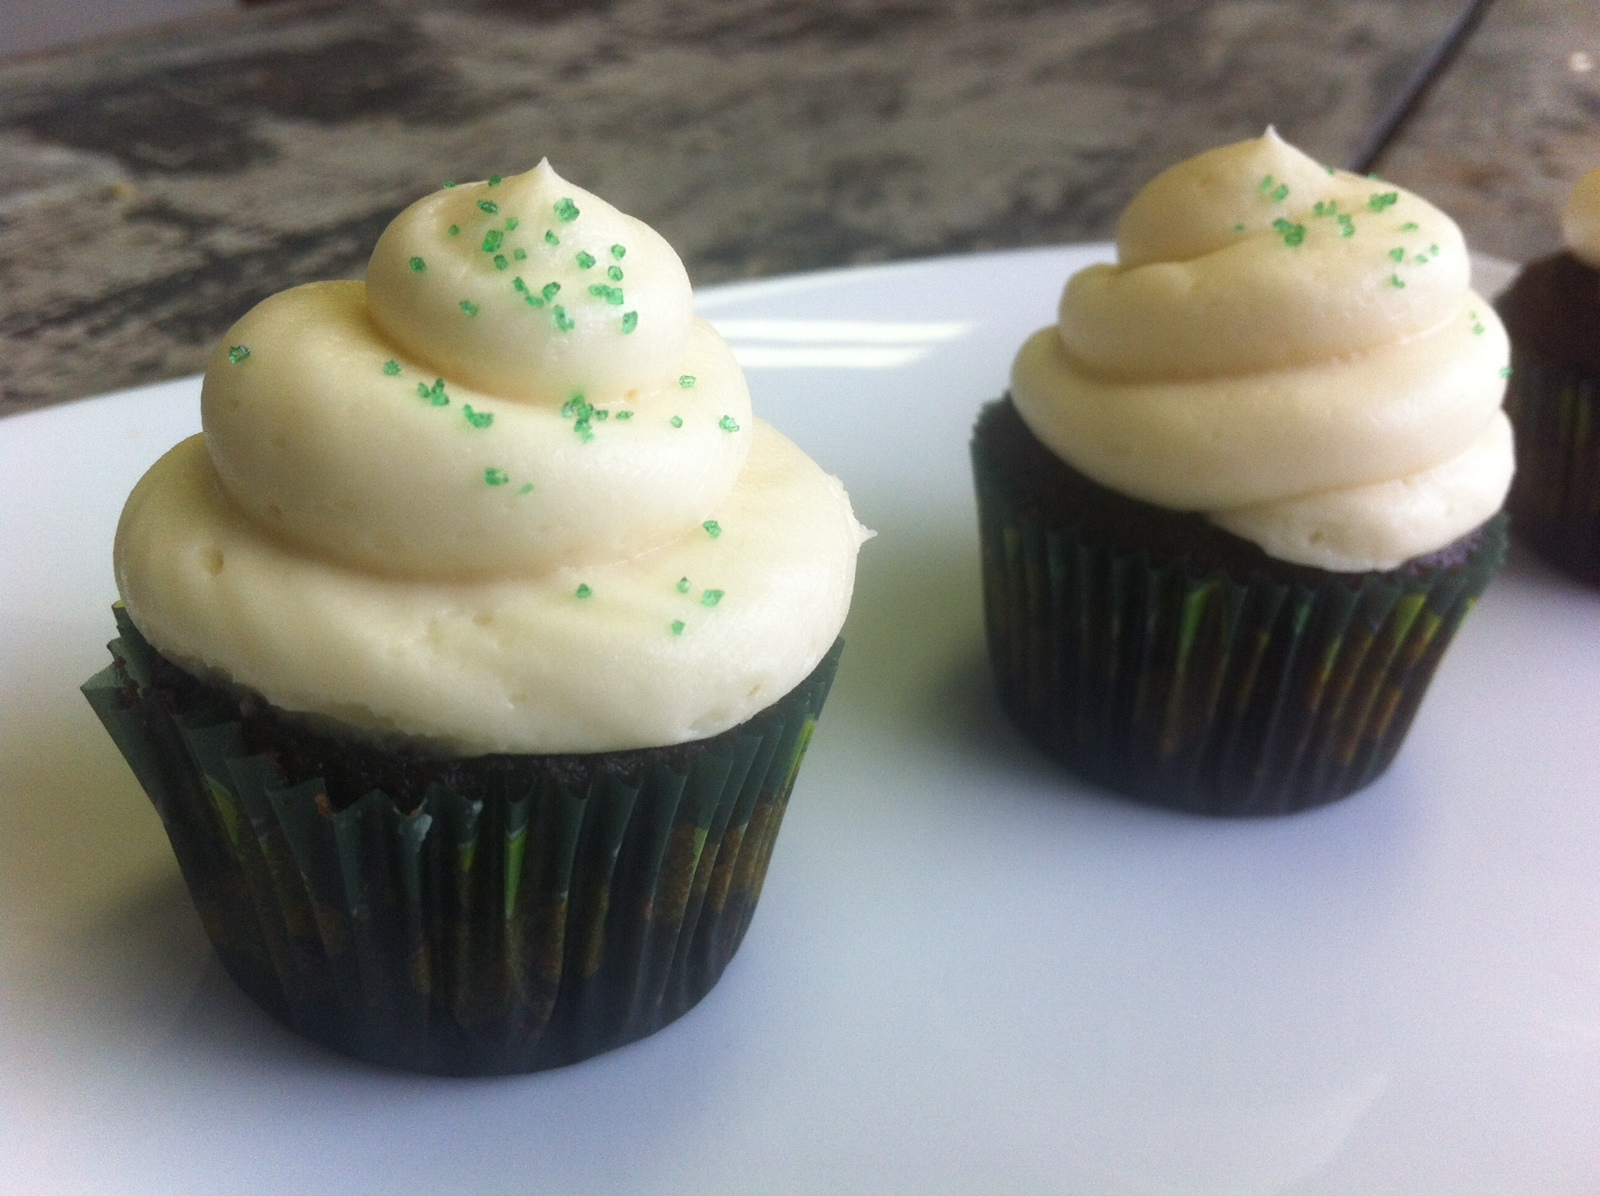 So, you may or may not have noticed that I already have a recipe for Guinness, Jameson & Baileys cupcakes on the blog. This year I decided to change it up a bit and make a new, modified version of this crowd favorite.